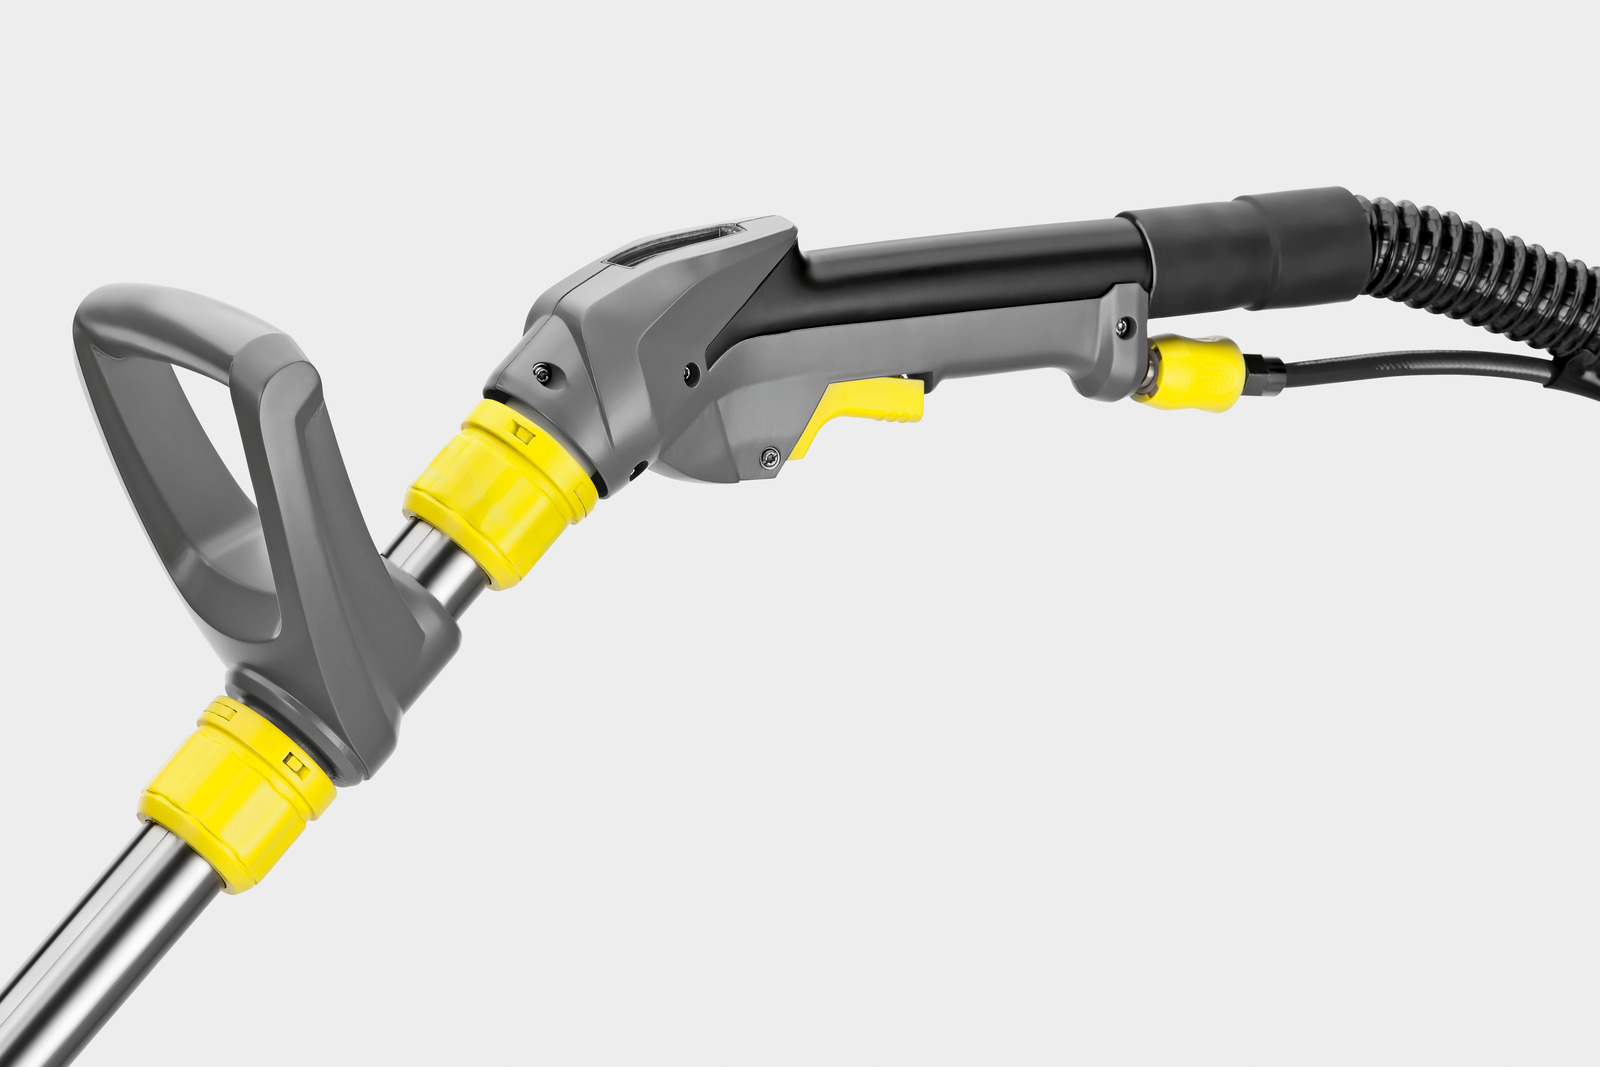 Karcher_1.100-130.0_Spray-extraction Cleaner 2 - Puzzi 10/1 Spray Extraction Cleaner